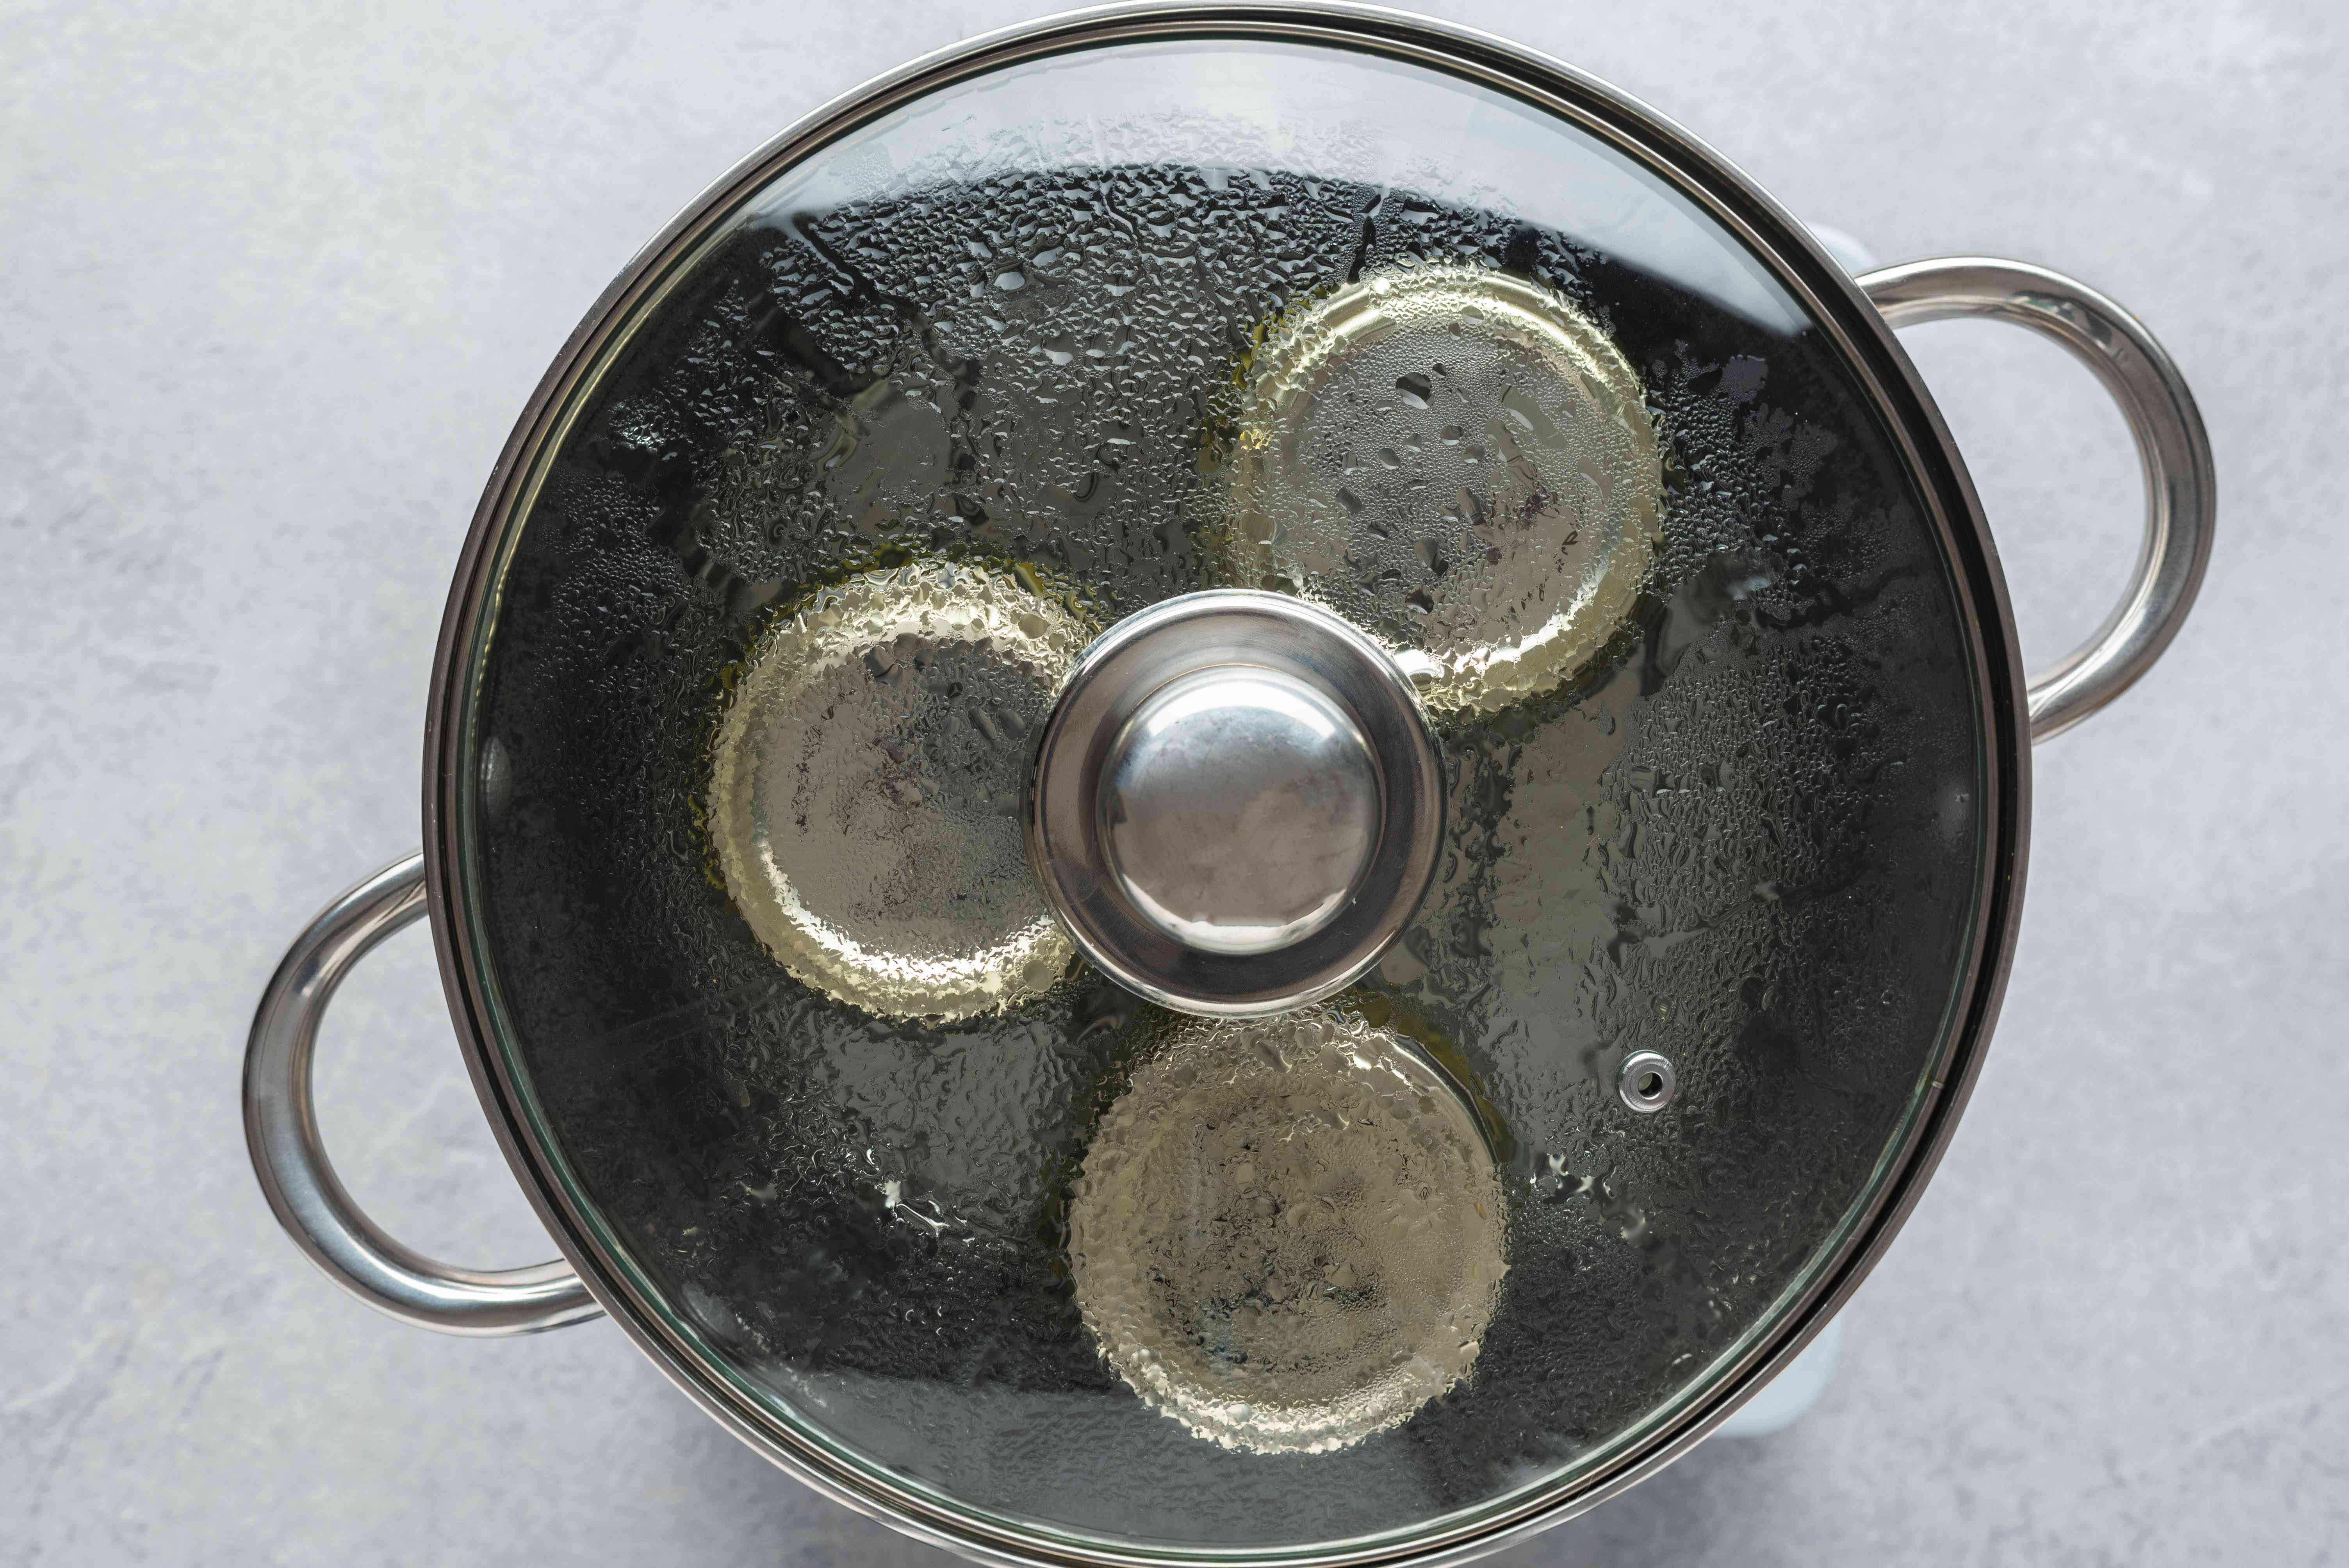 cans with cucumbers in the a water canner